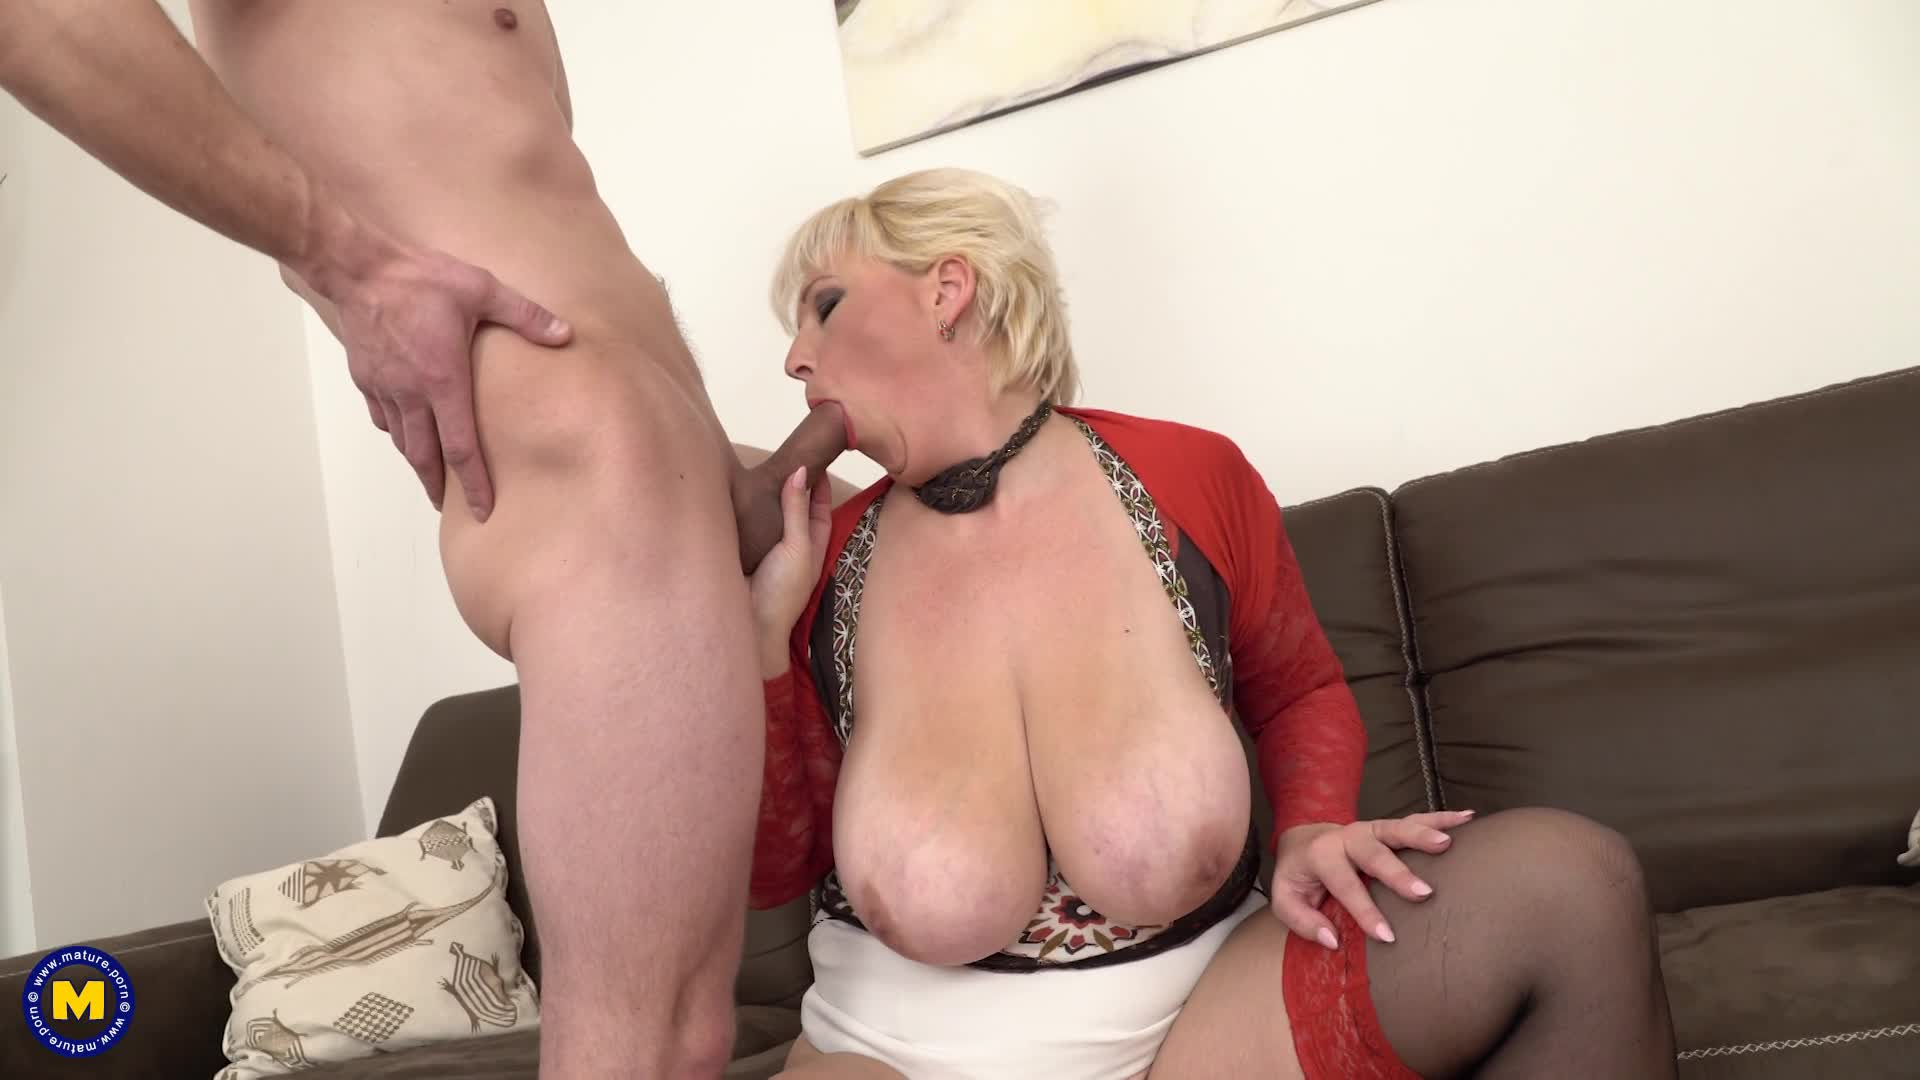 Girl Gets Fucked Hard The Ass